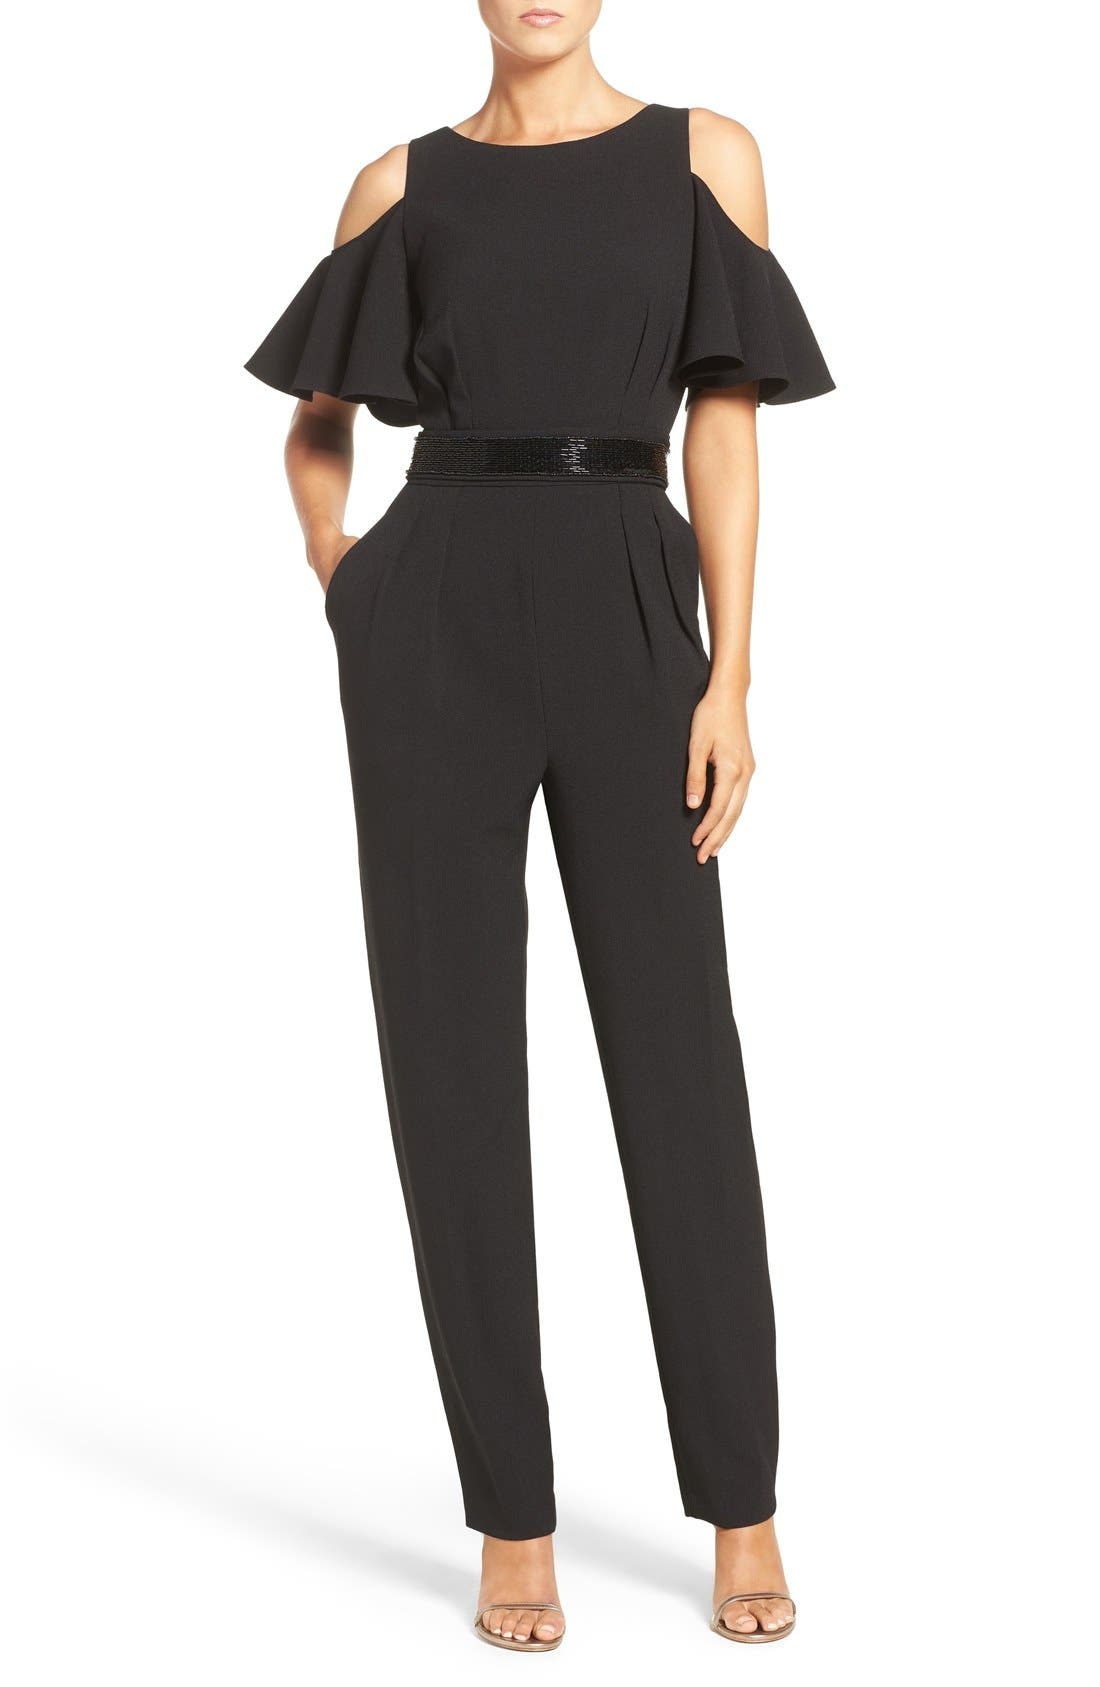 Alternate Image 1 Selected - Eliza J Cold Shoulder Jumpsuit (Regular & Petite)